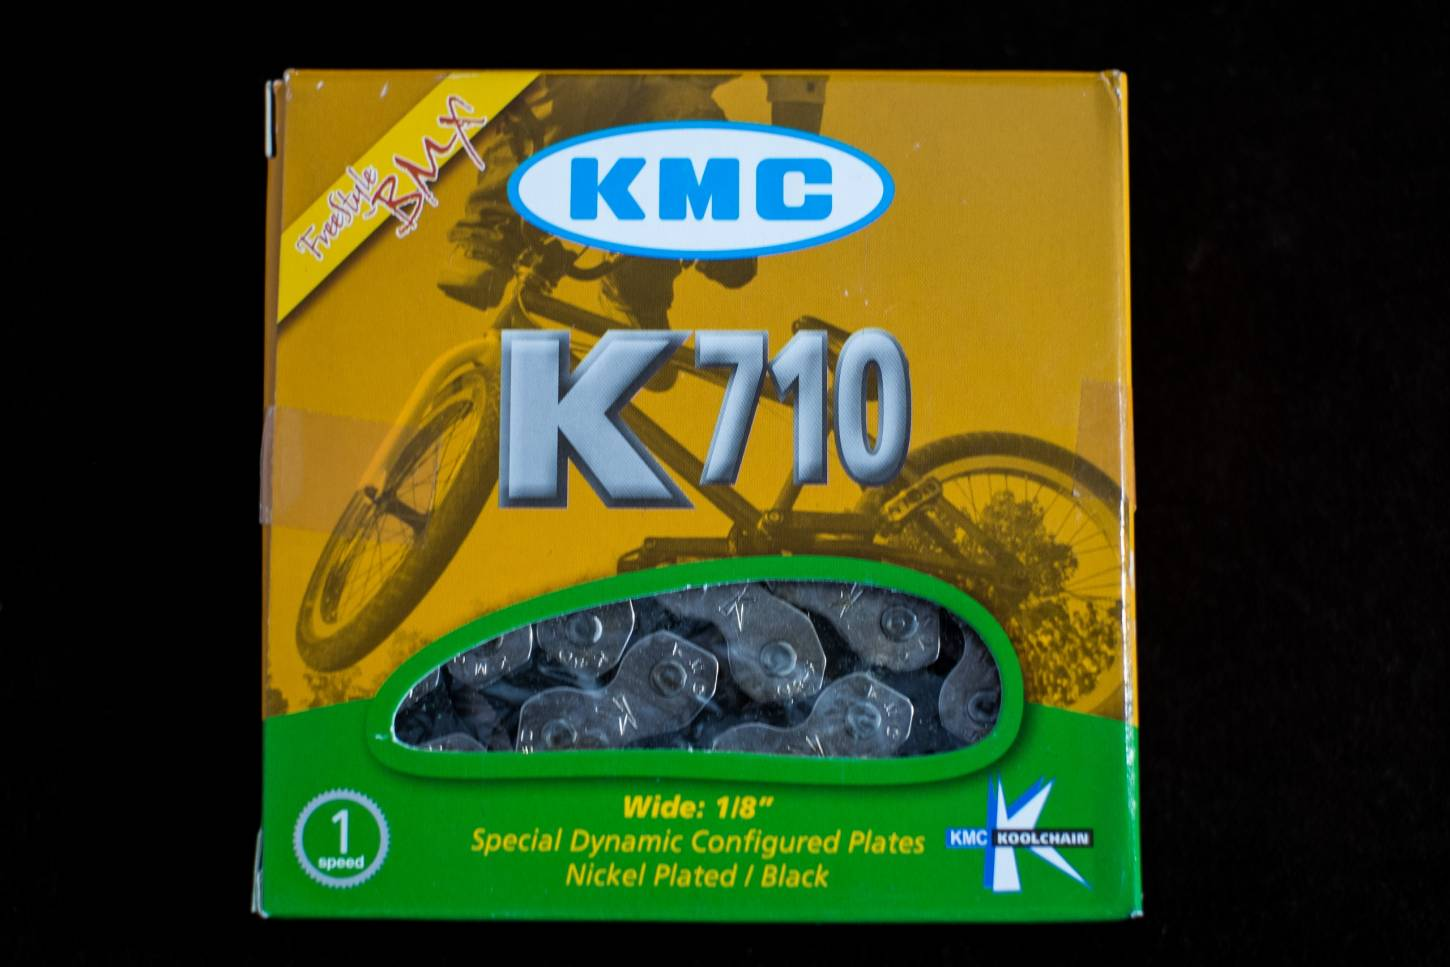 KMC K710 track fixie chain - 1 speed - 1/2 x 1/8 silver or black- 100 links